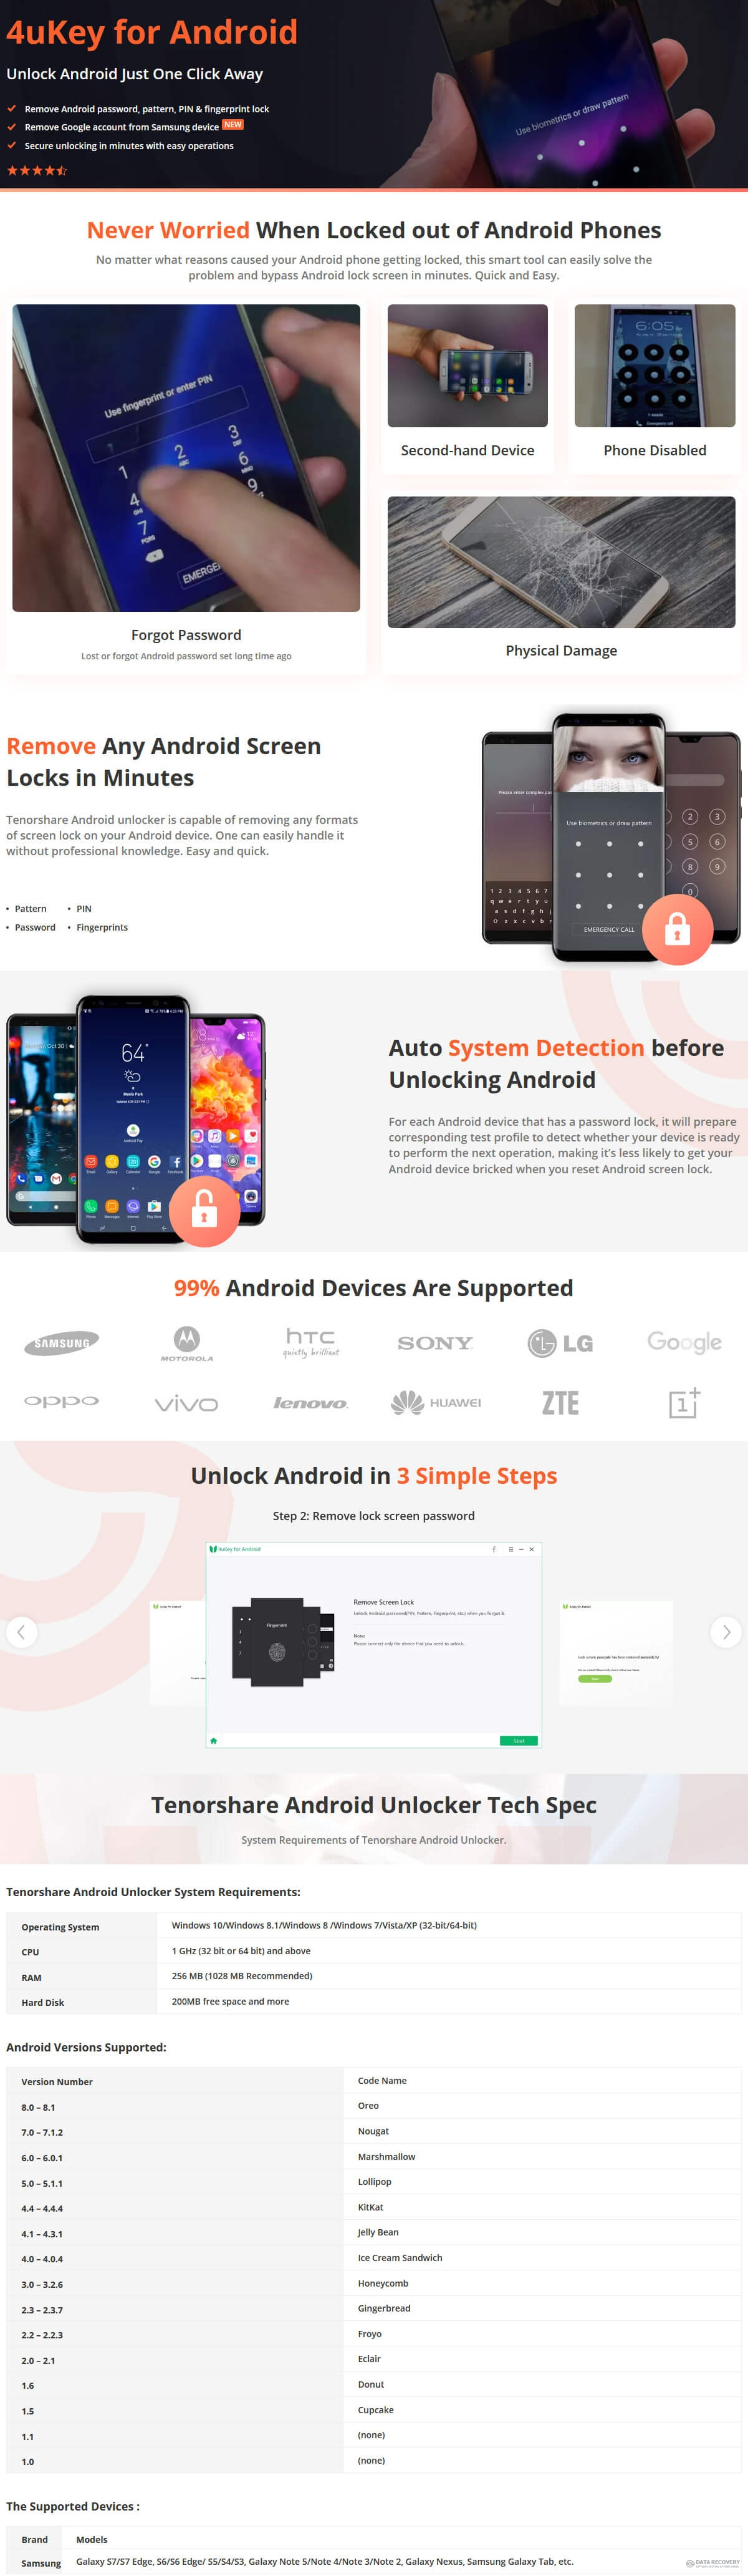 Tenorshare 4uKey Android Screen Unlocker Discount Coupon Code